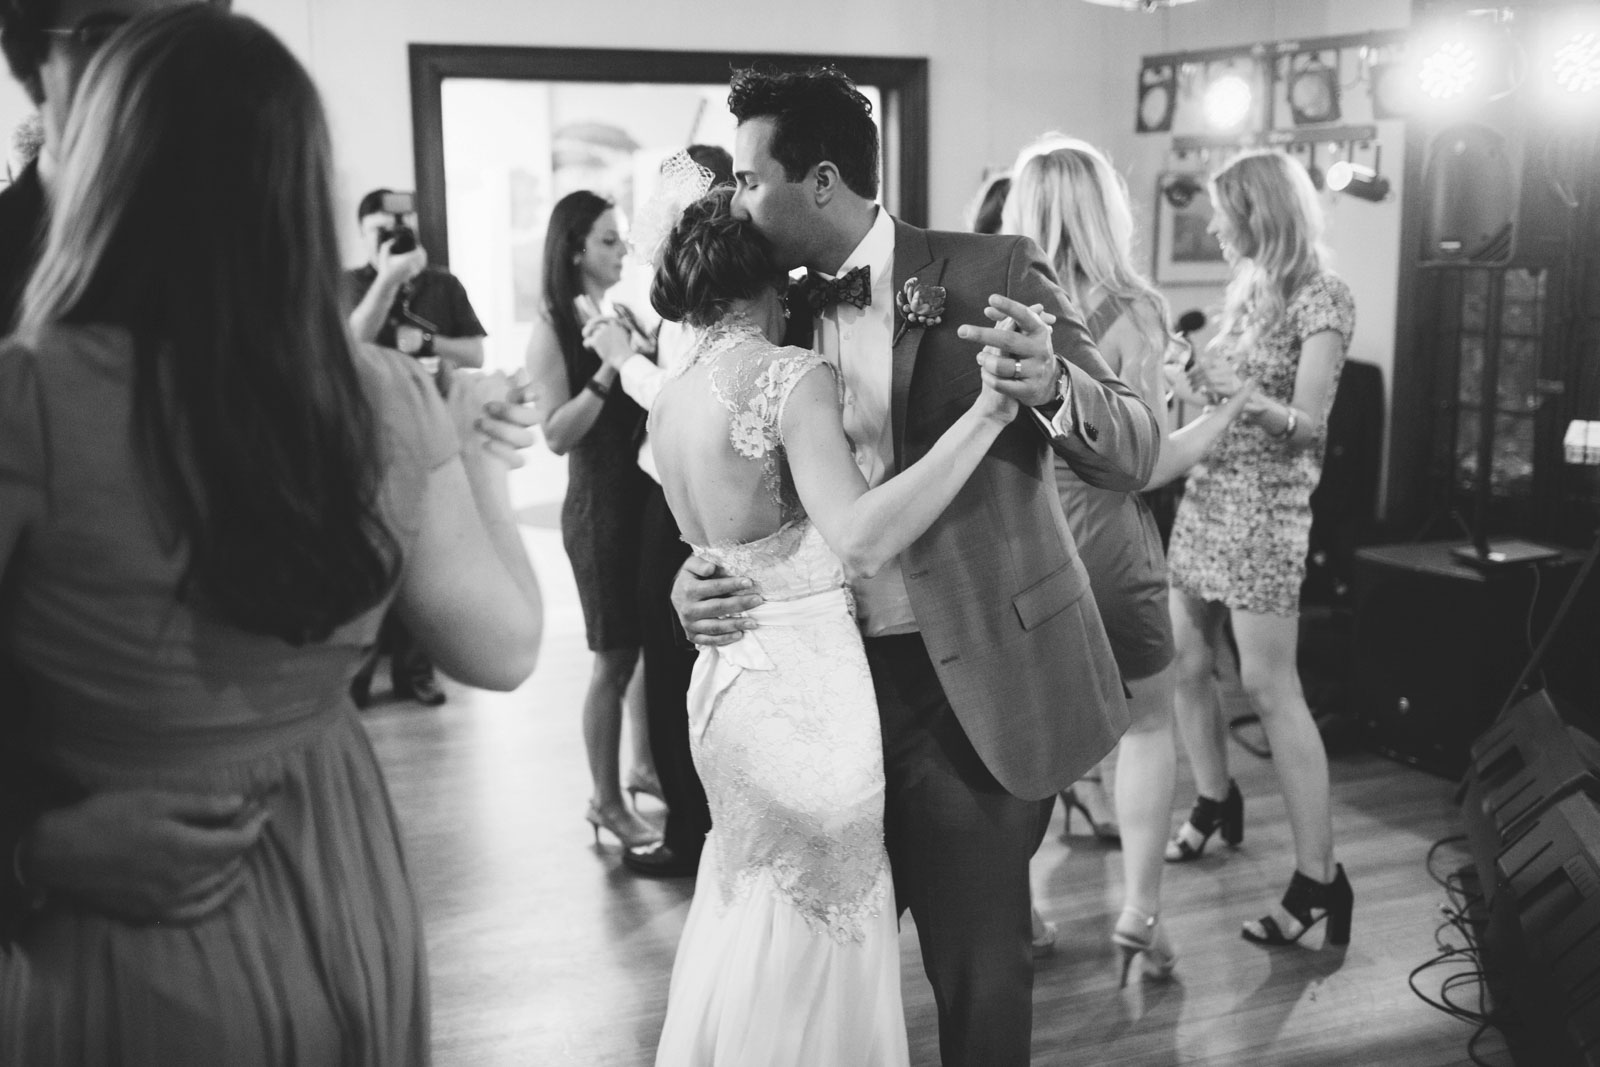 black and white intimate shot of groom hugging bride during slow song at wedding reception